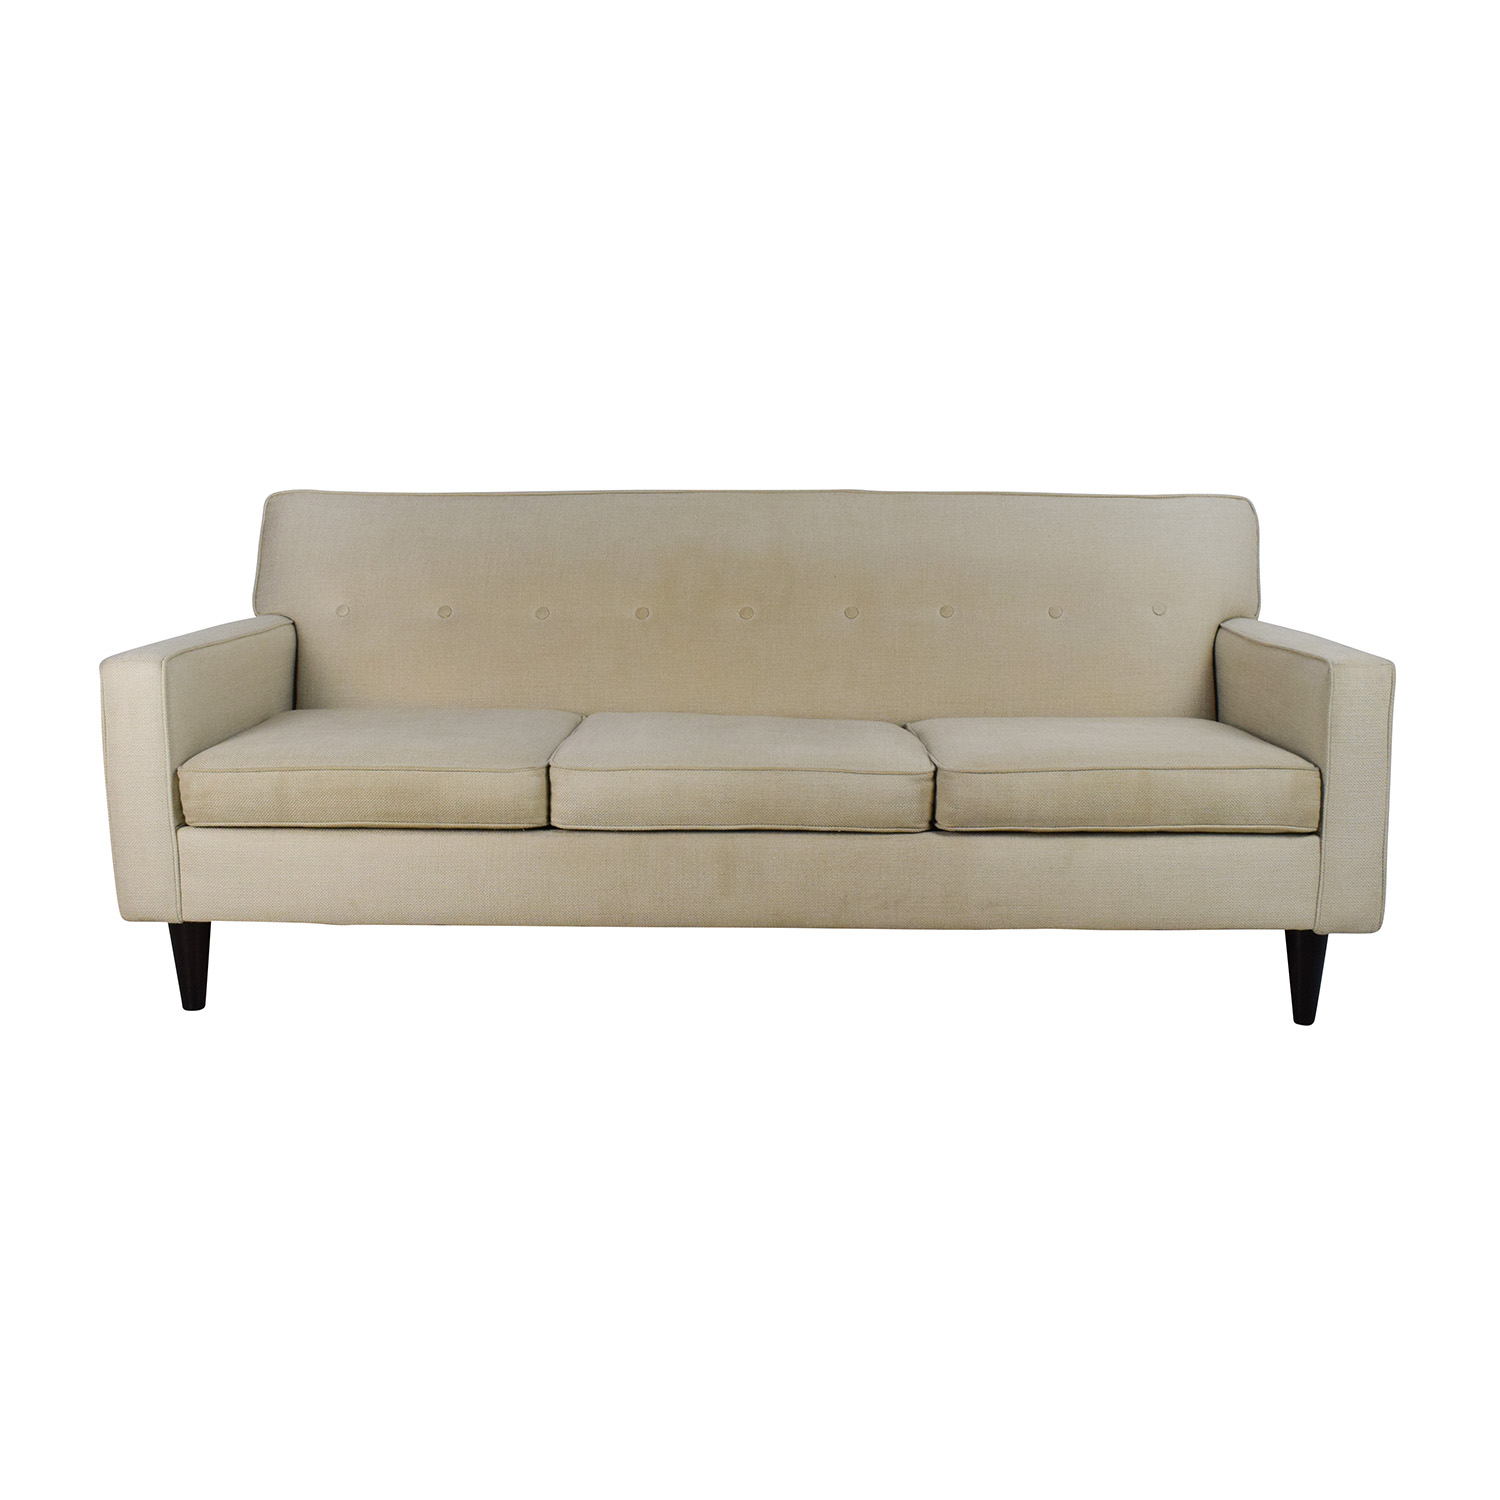 Ecksofa Jelmoli Big Sofa Online Latest Bed And Sofa Big Sofa Bed Leather Couch